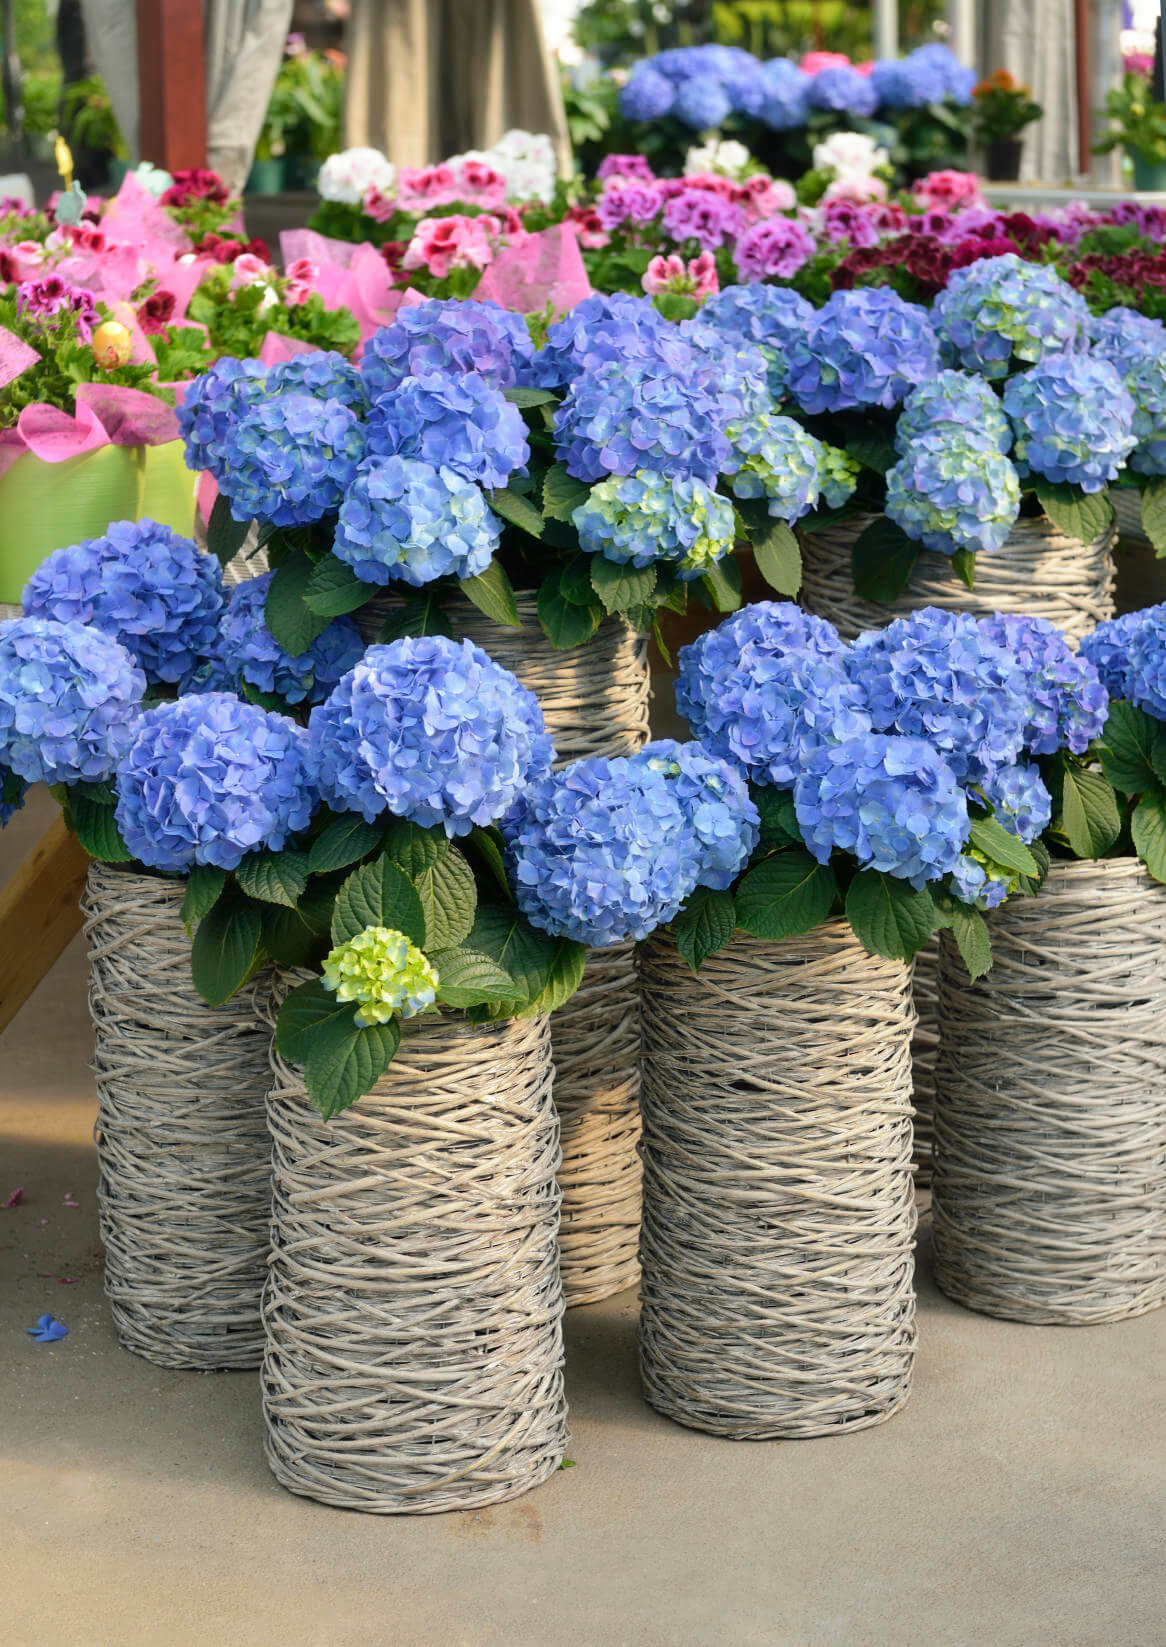 Give your garden a feel of the flower marketplaces in Japan selling hydrangeas by using wicker or woven tall vases. Make sure you use the same color and blend when using this arrangement.